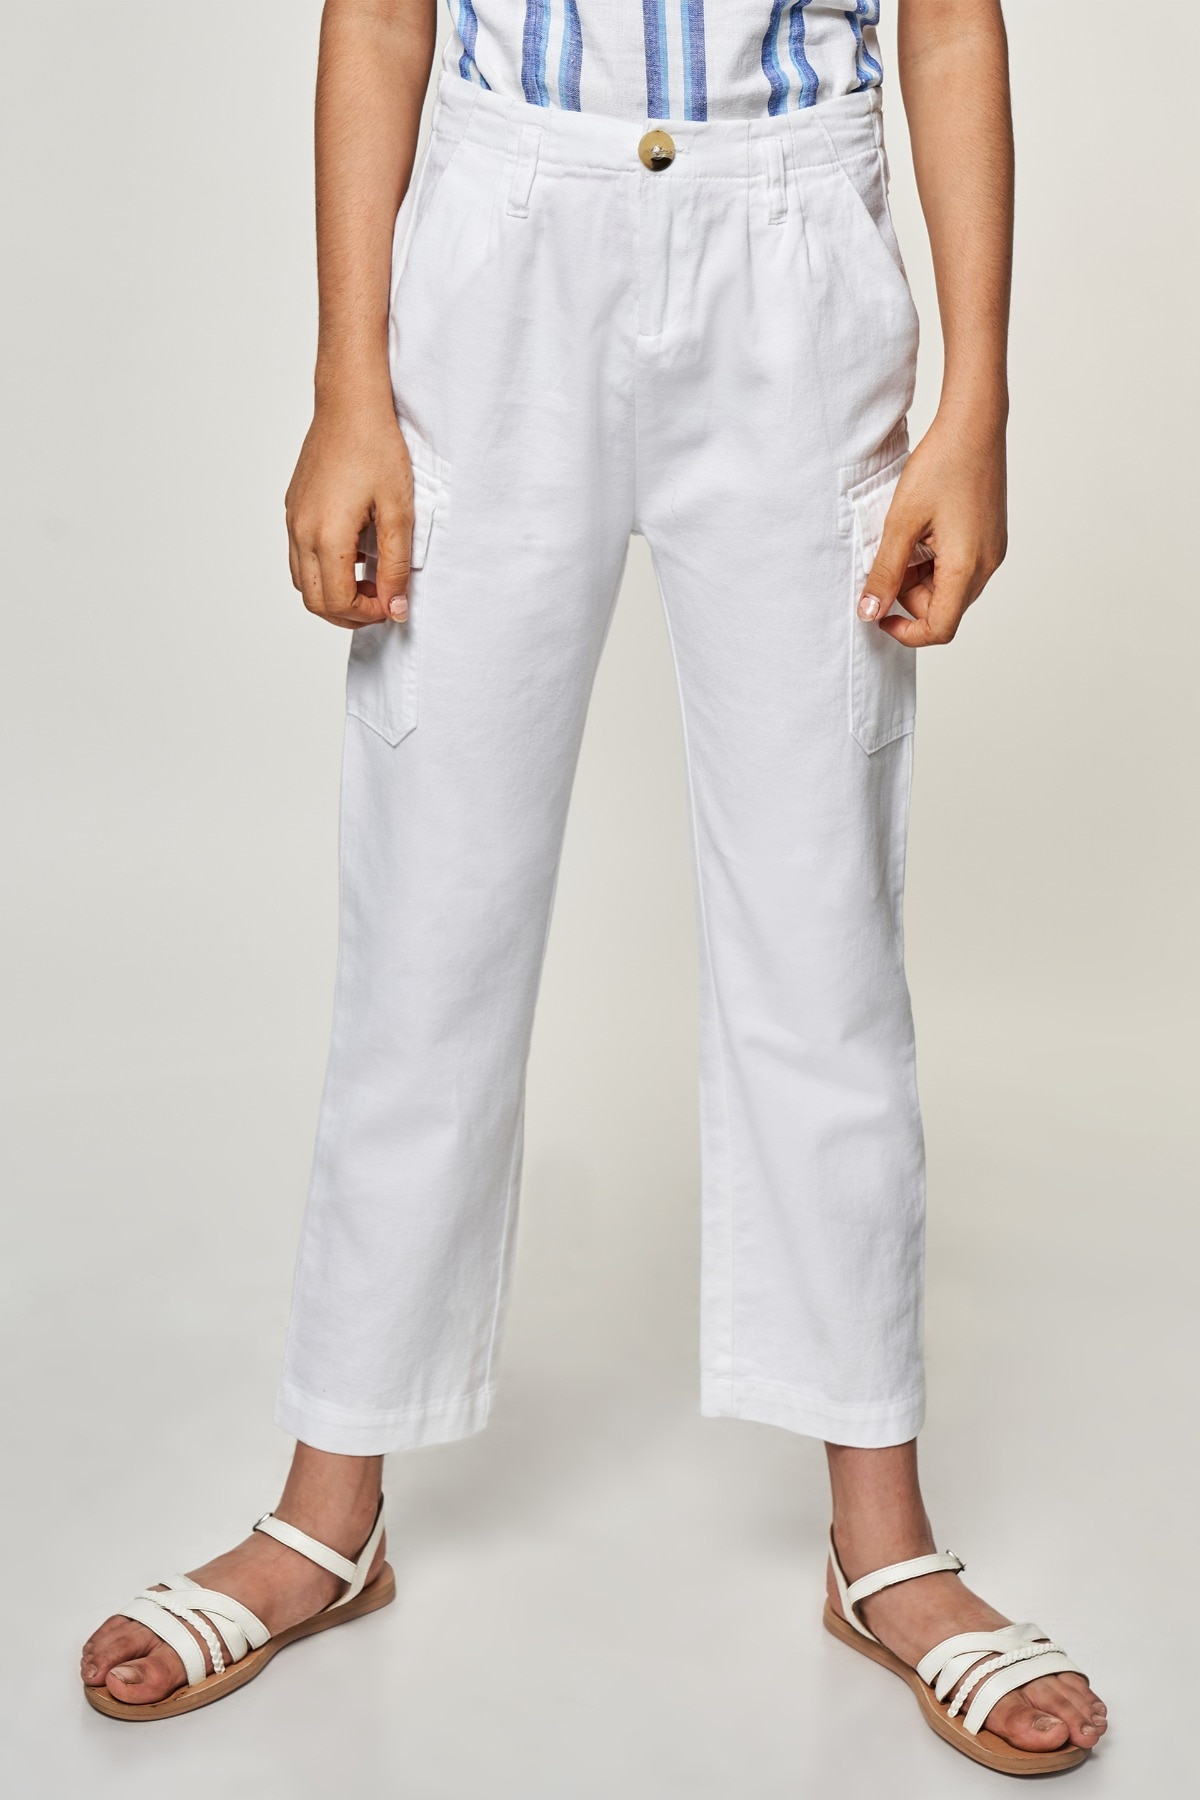 AND | White Solid  Bottom